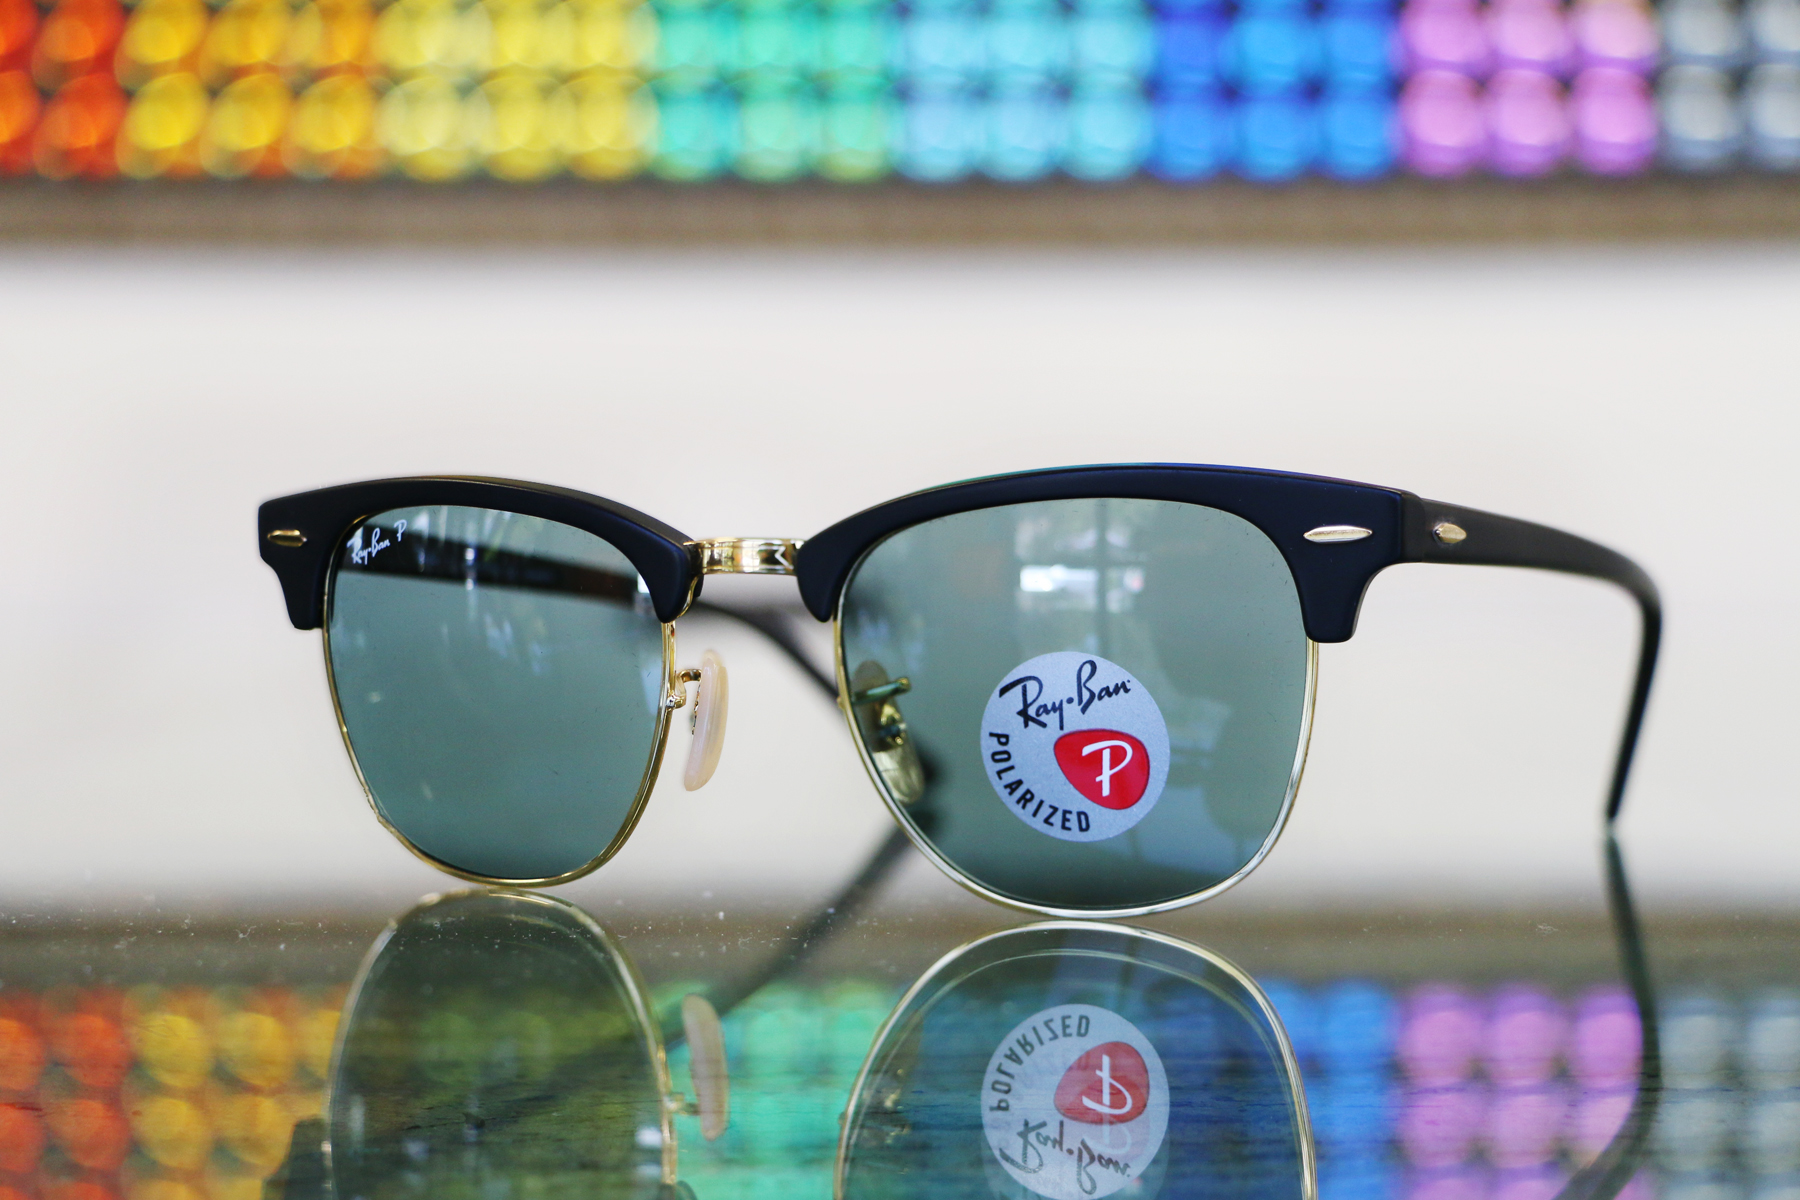 Ray Ban Clubmaster, Ray Ban Prescription Sunglasses